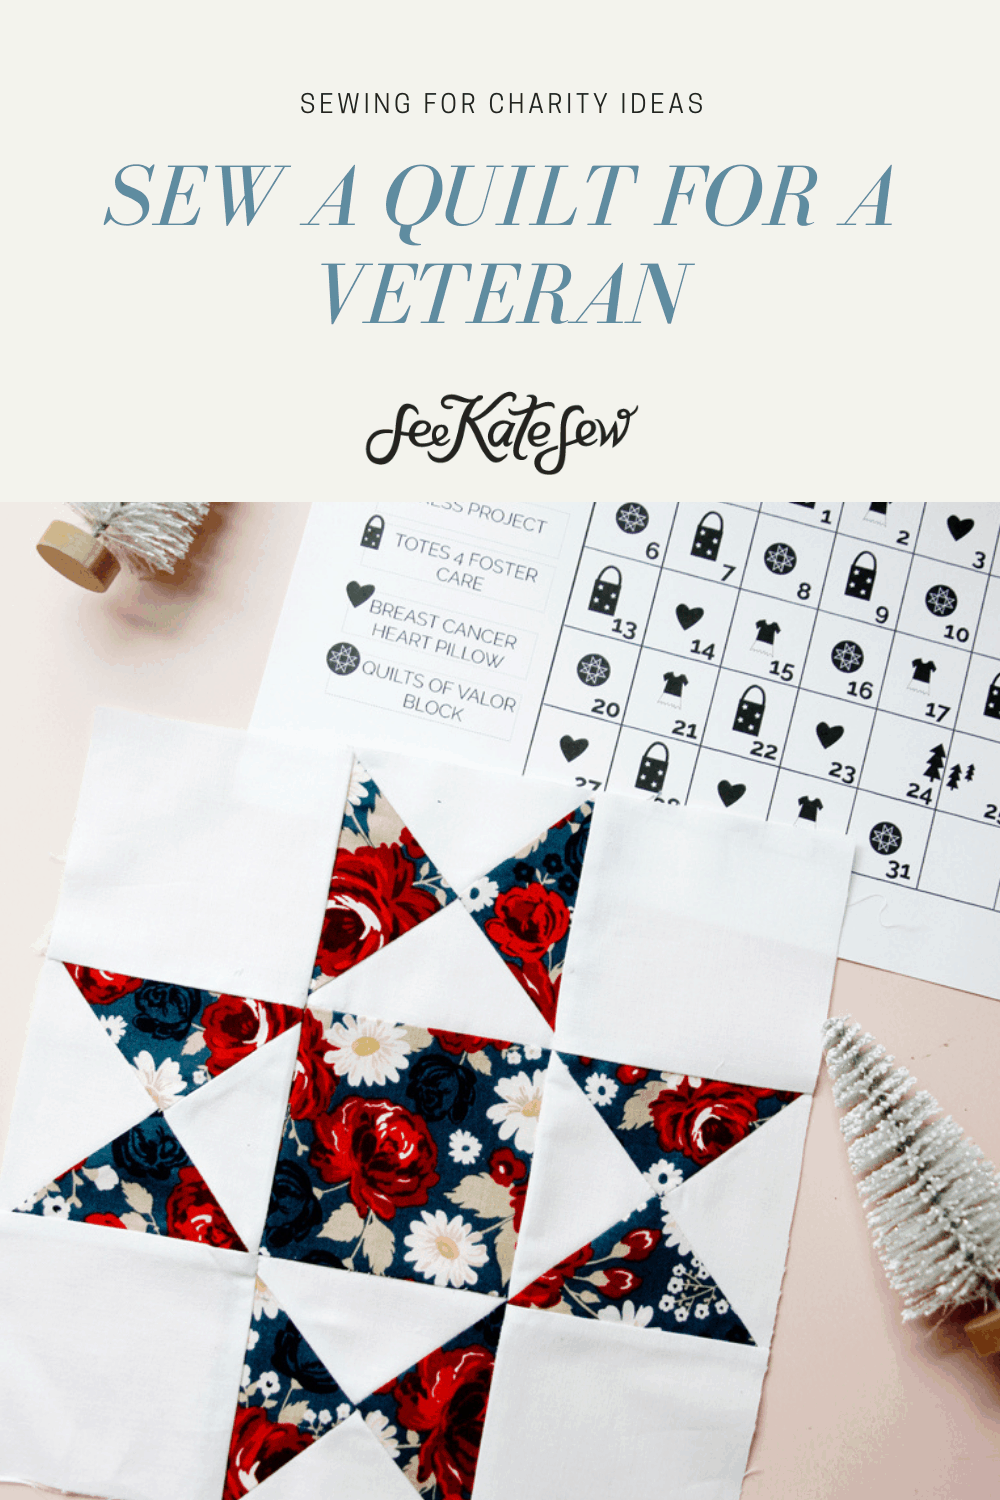 Sew a Quilt for a Vet